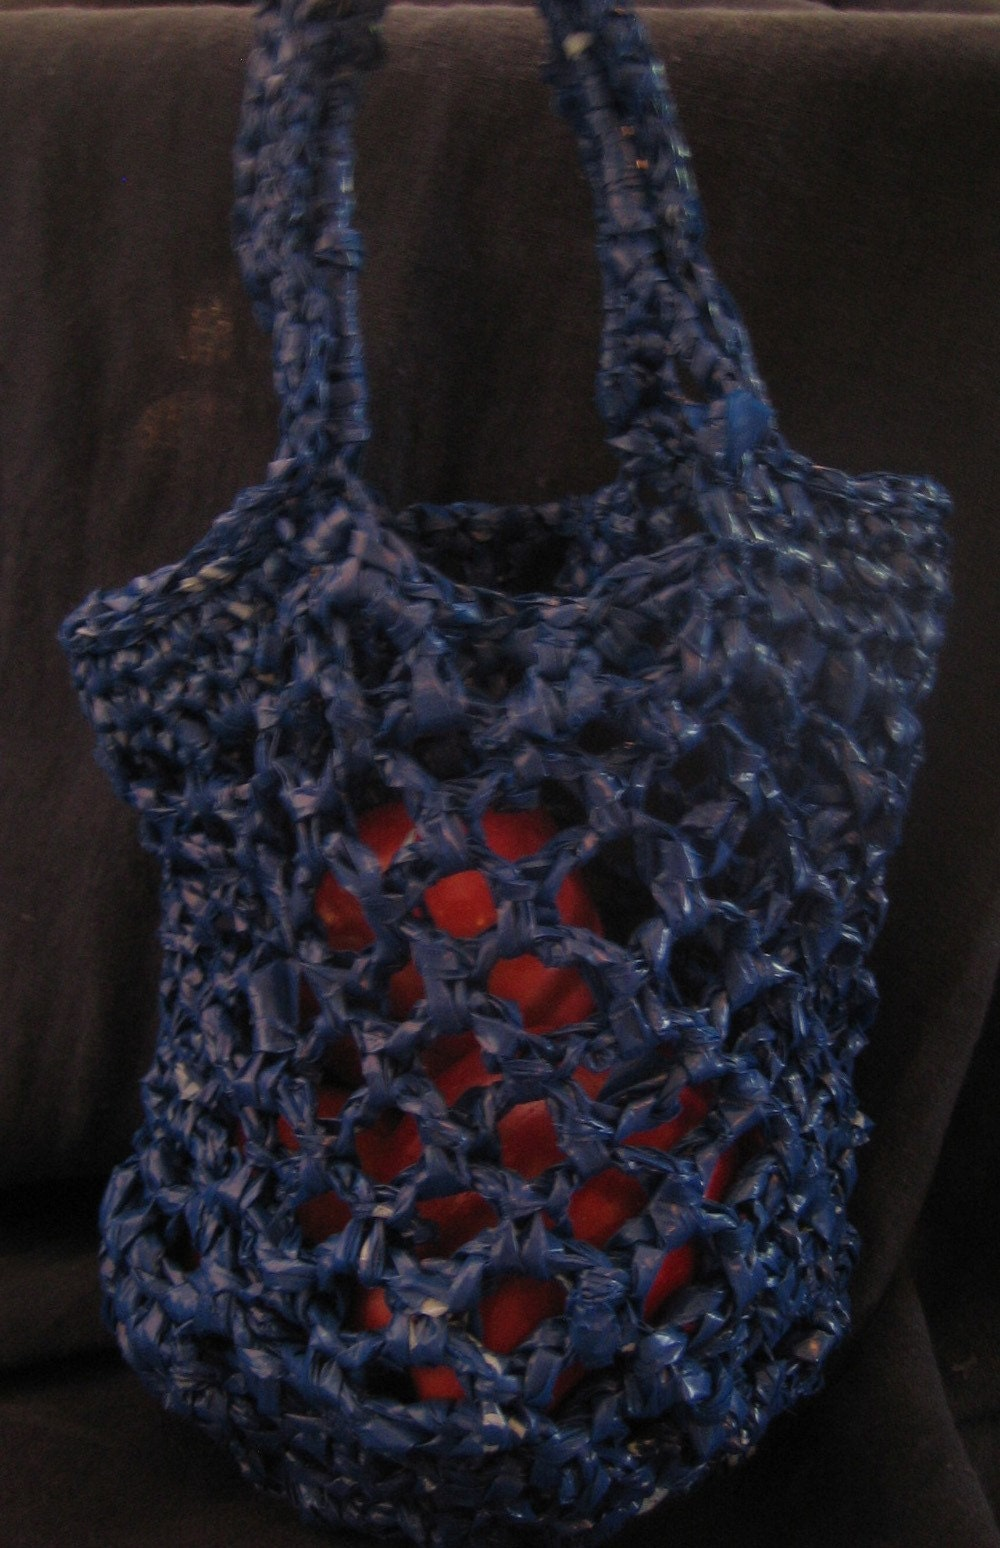 Crochet Collection: Crochet Market Bag Pattern Coming Soon!